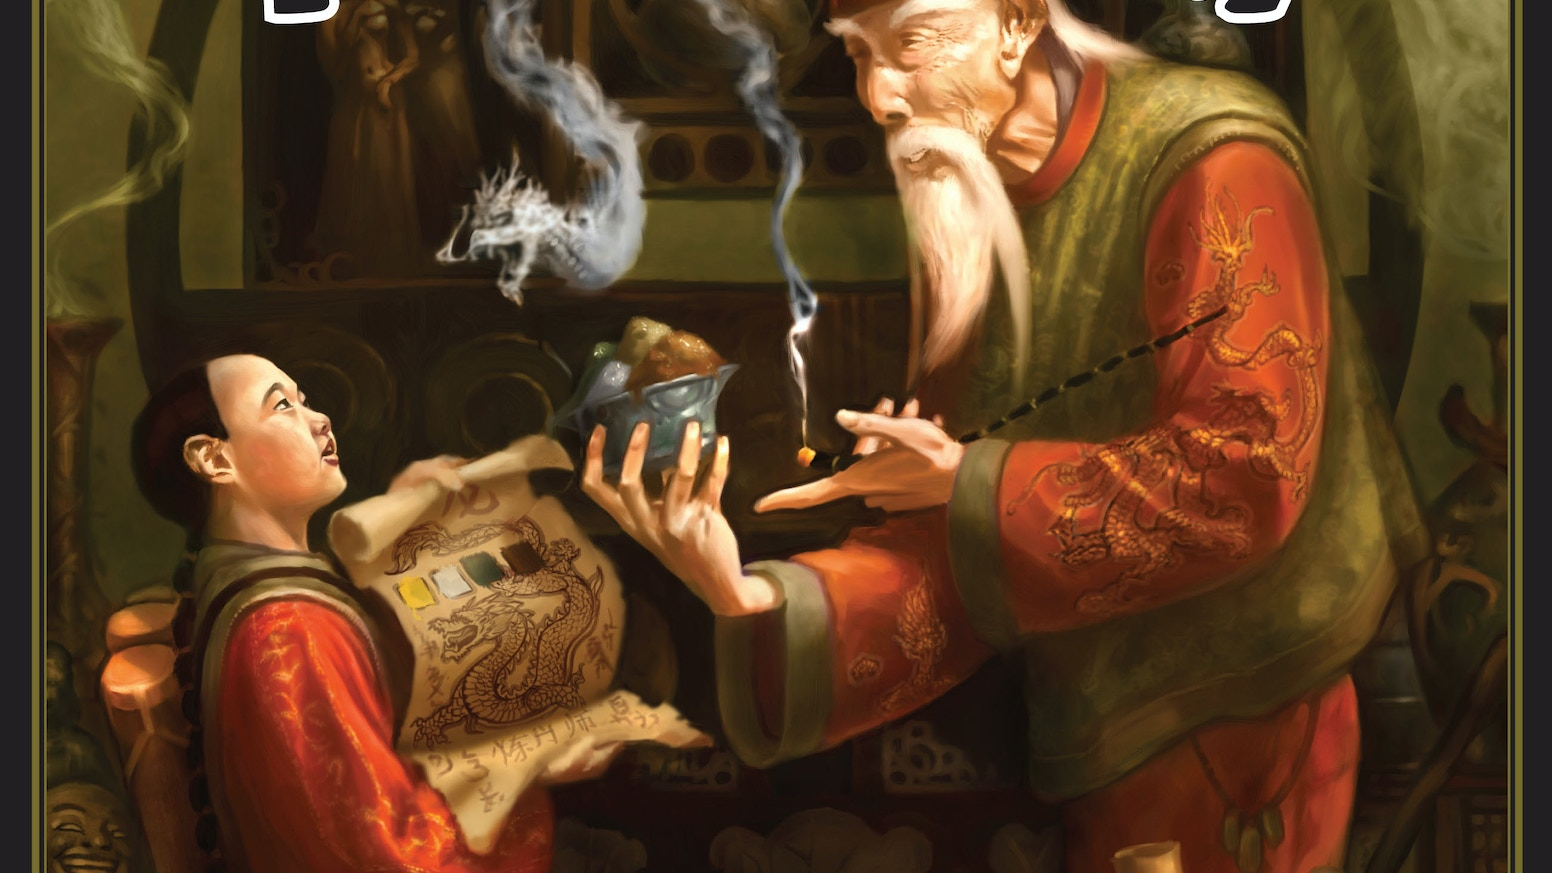 Manage your resources and build greater projects than your rivals and you will become the new Zong Shi - The Grand Master Craftsman!